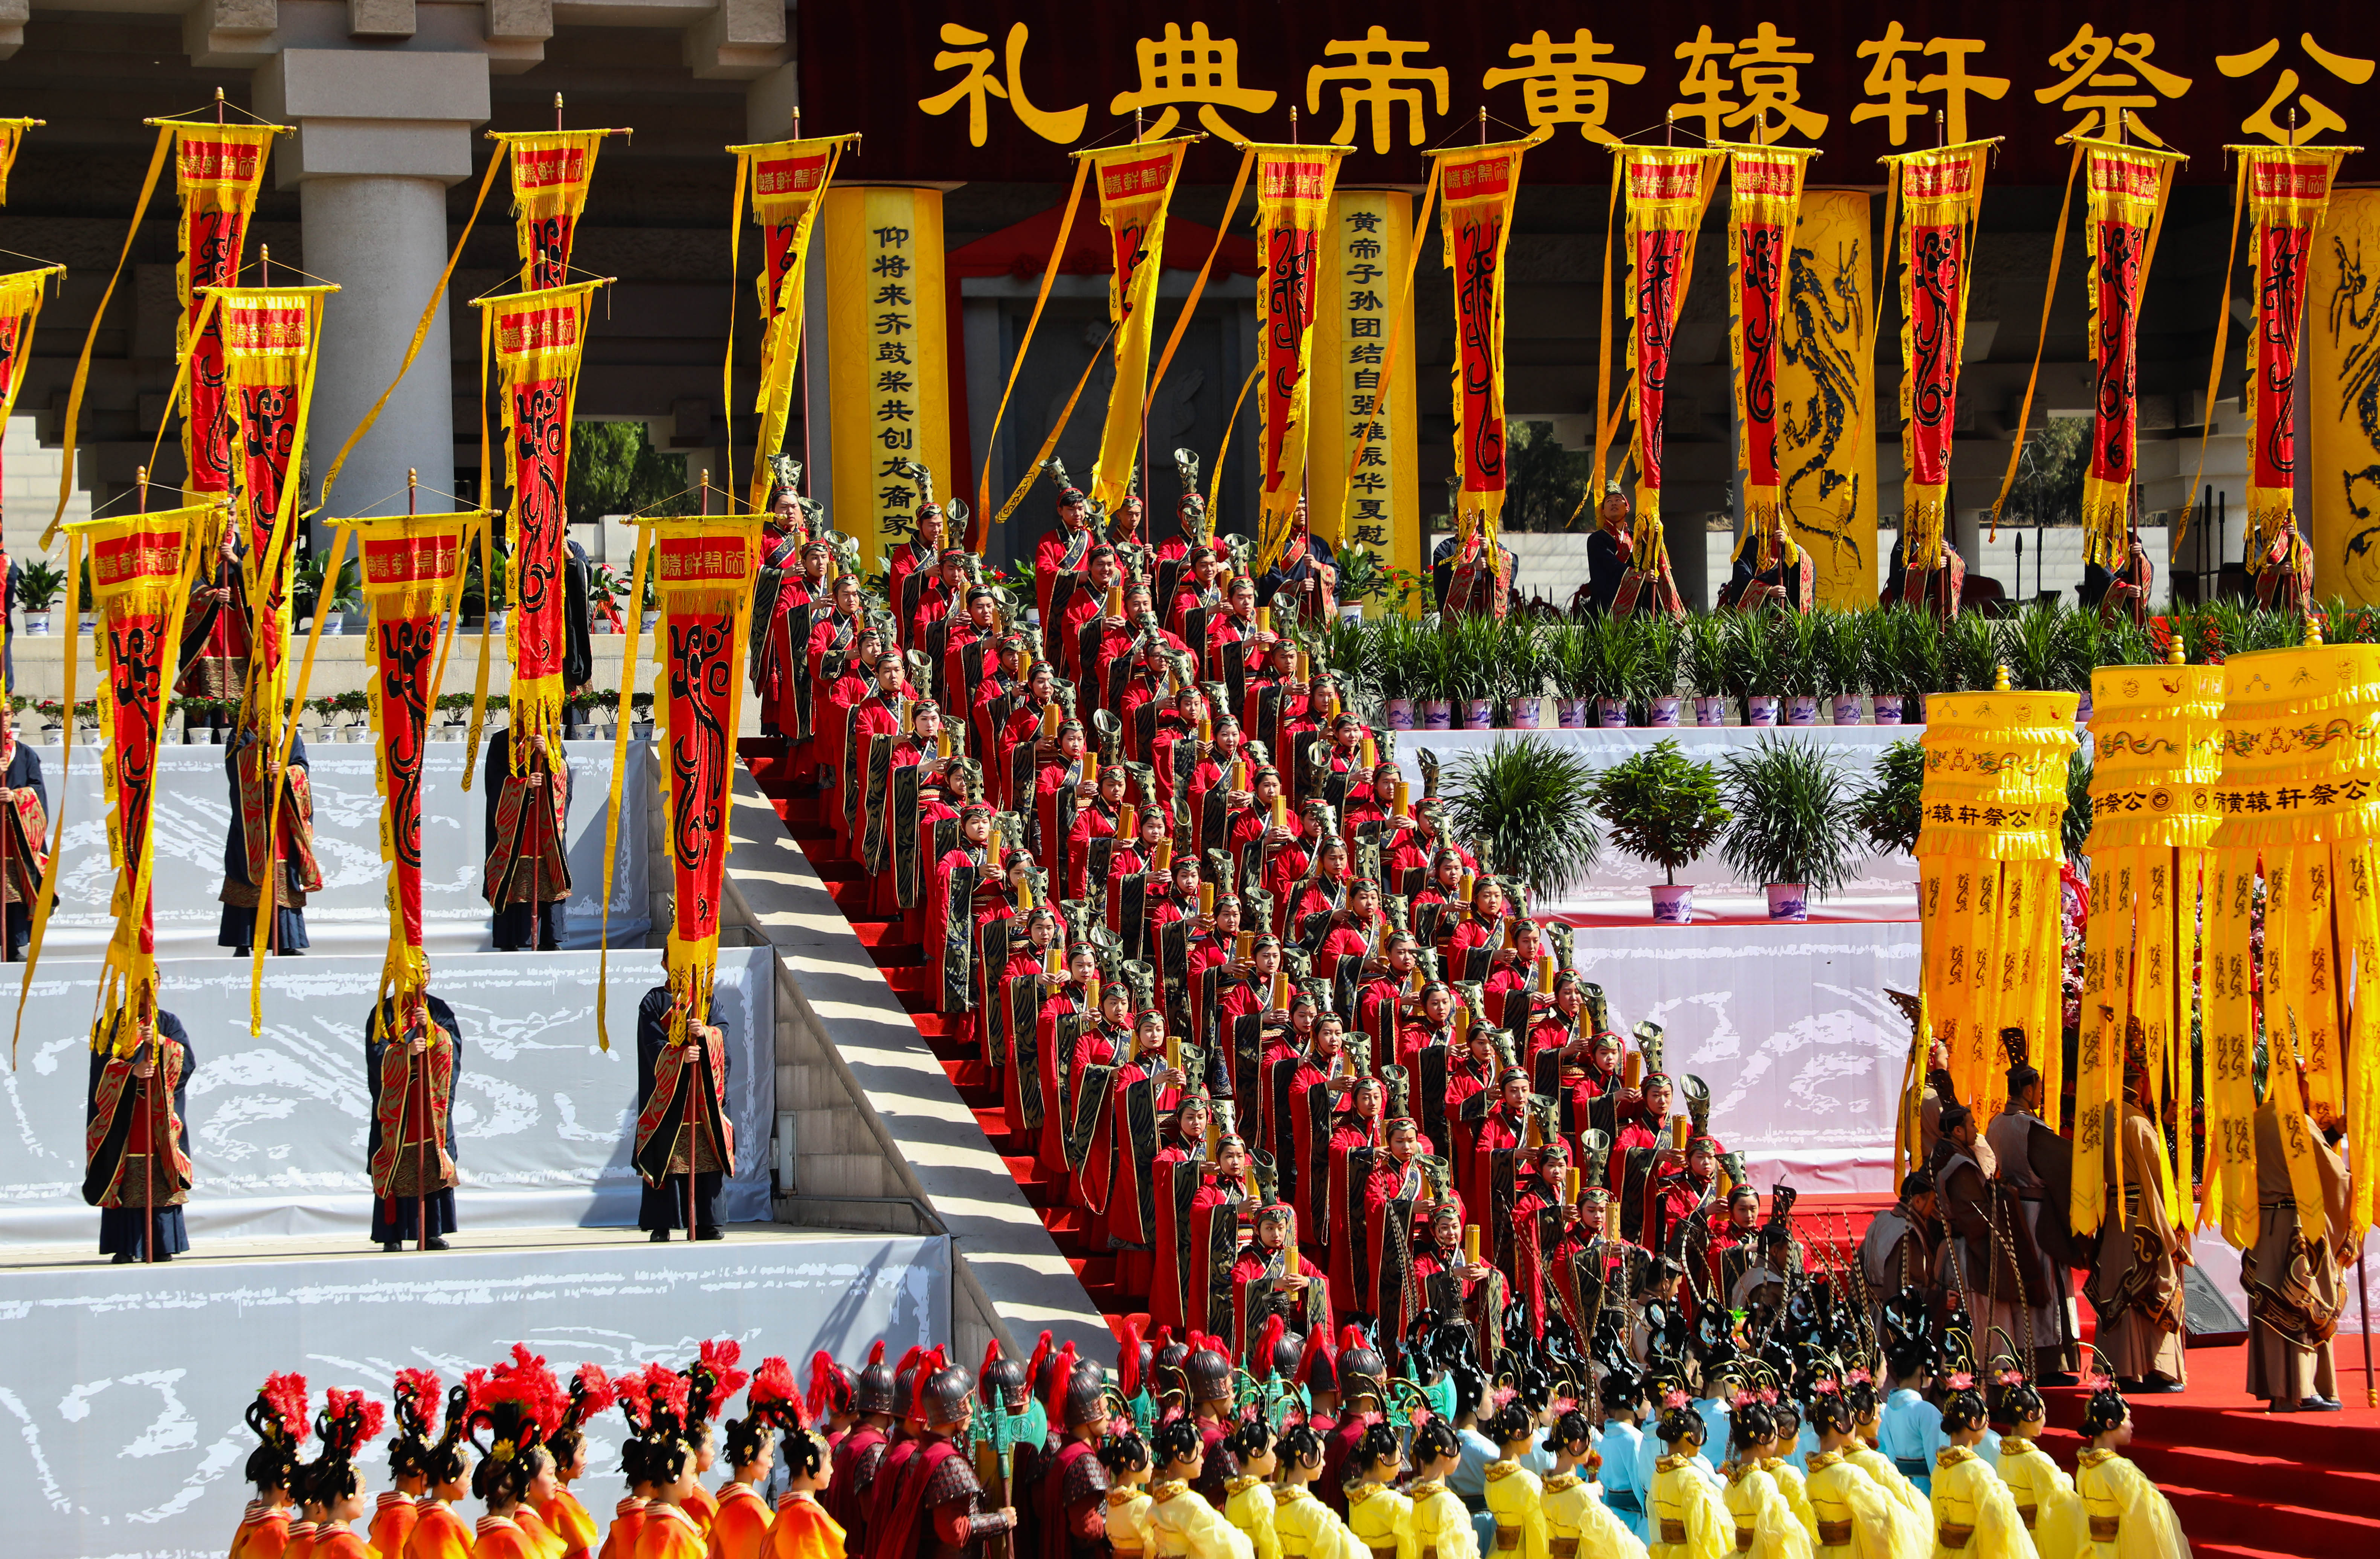 The Yellow Emperor honored in Northwest China